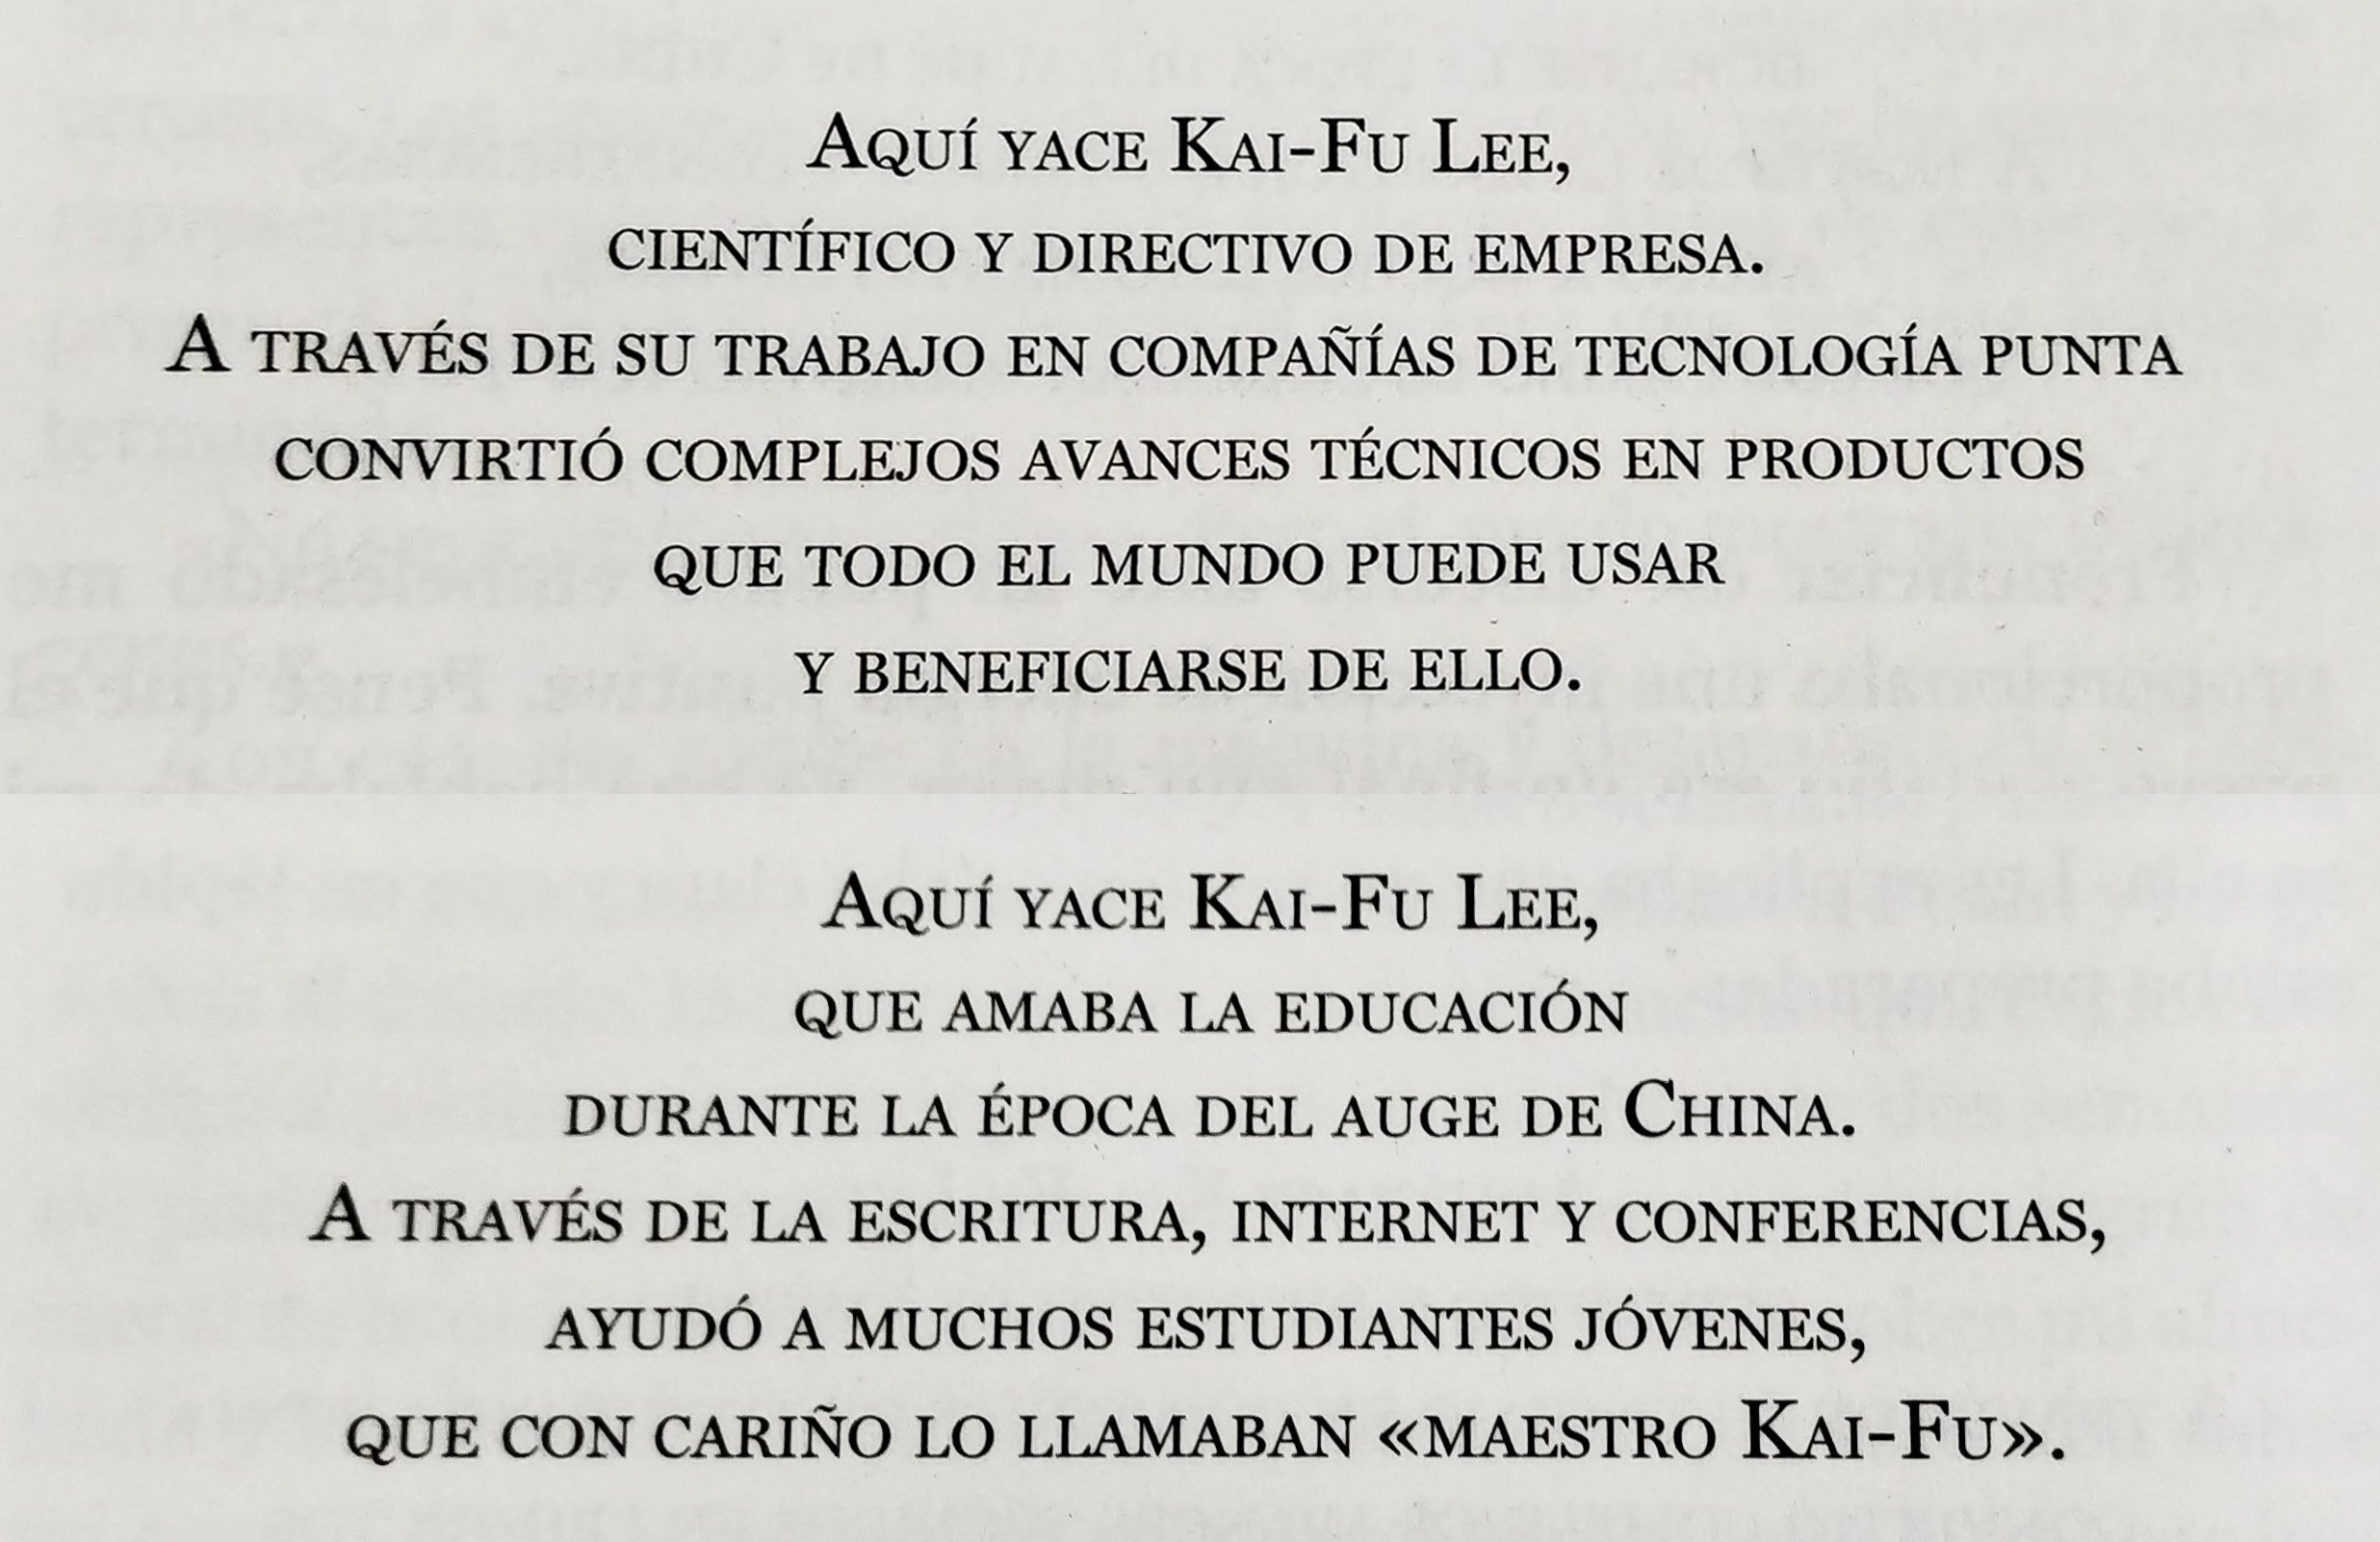 kai-fu lee superpotencias de la inteligencia artificial